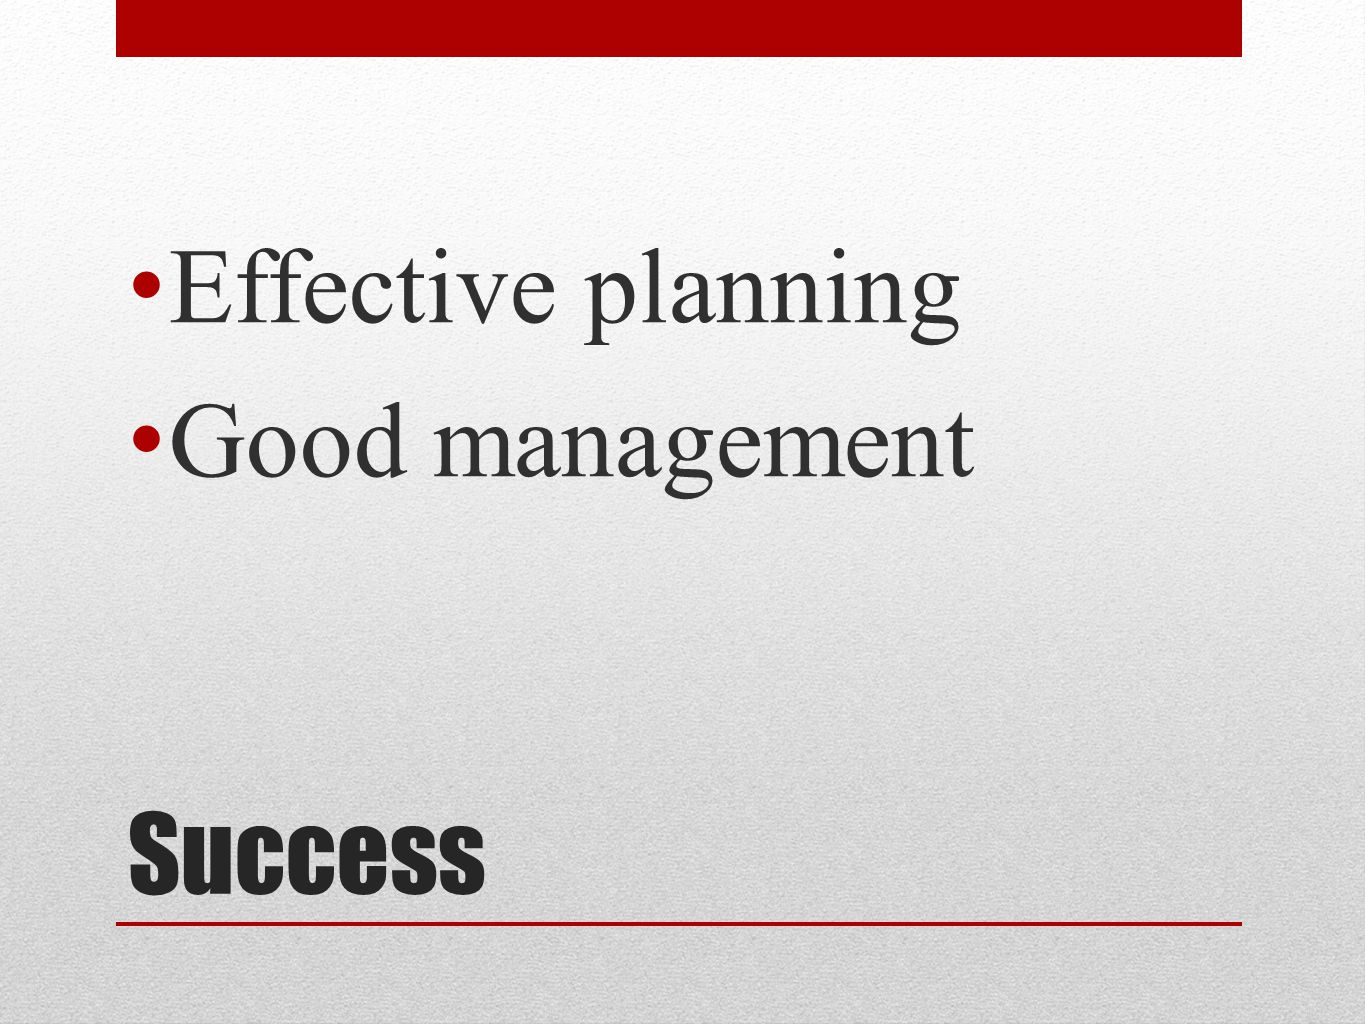 Effective planning Good management Success